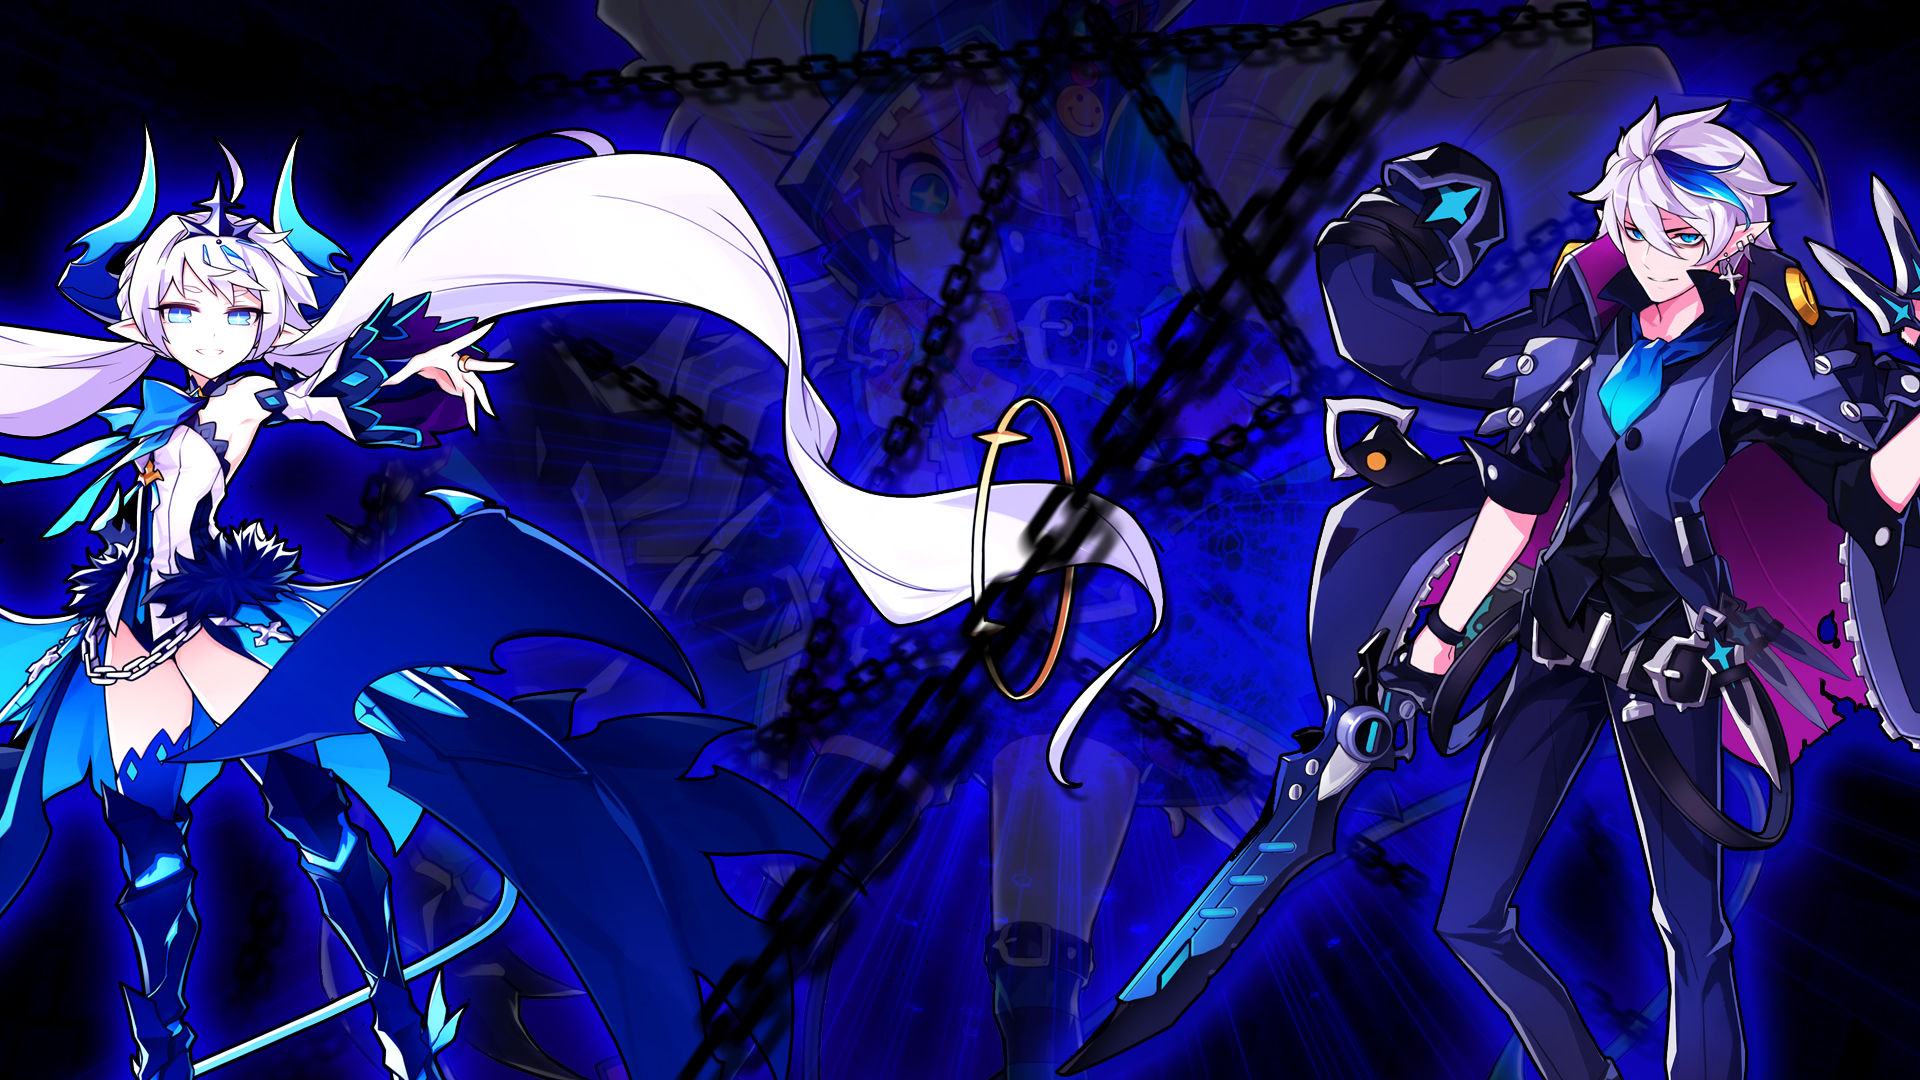 Elsword noblesse wallpaper wallpapersafari elsword noblesse wallpaper voltagebd